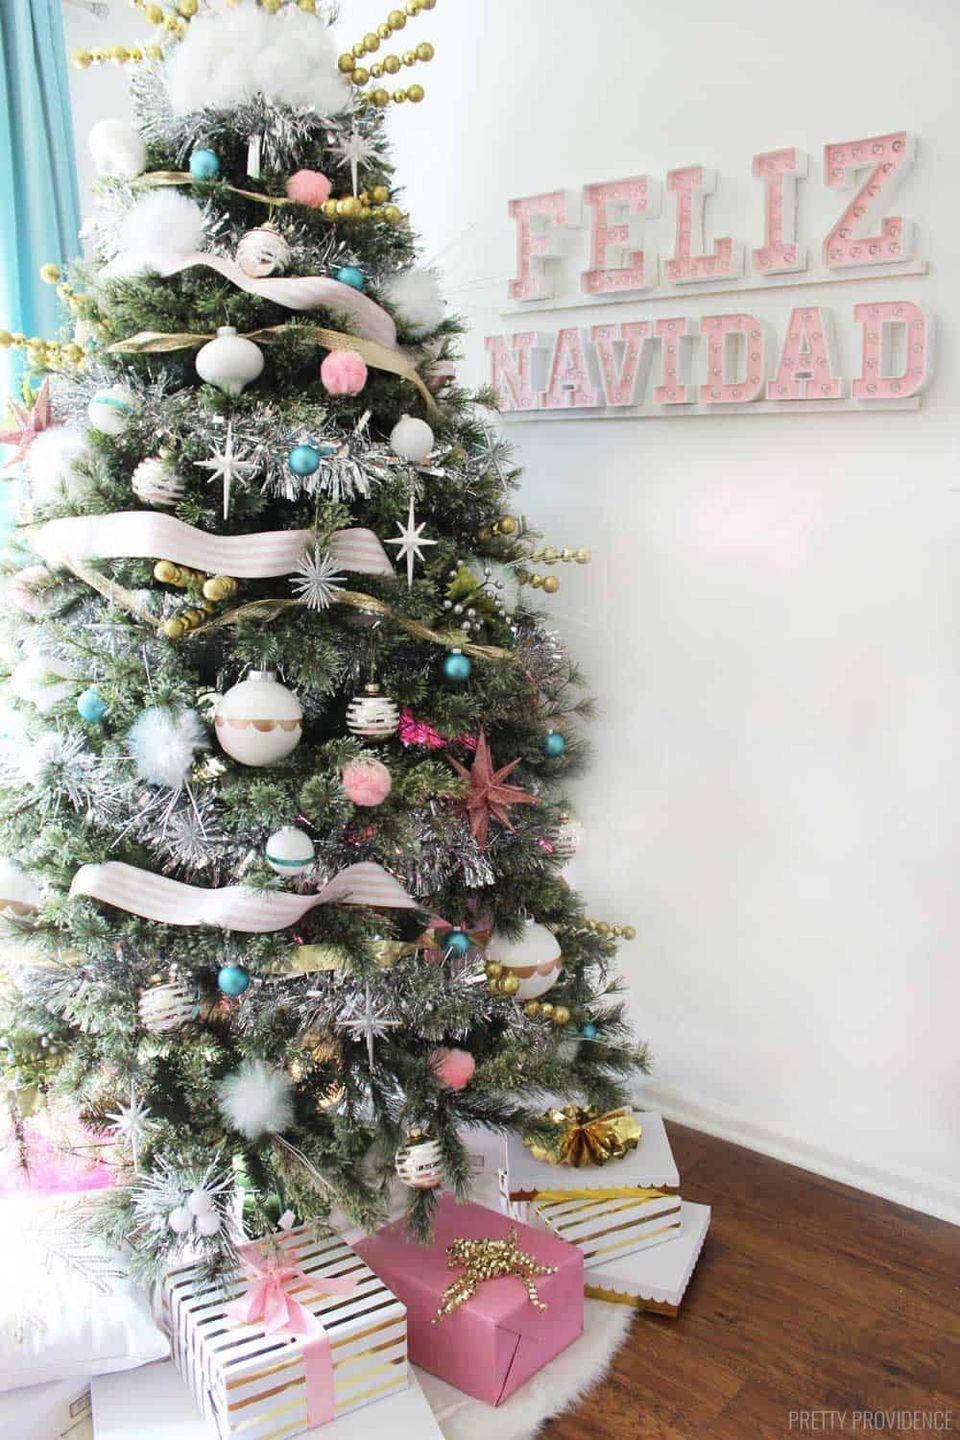 """<p>Haven't you heard? Pastels are in — at least with this tree they are. Light pink, baby blue, and white shatterproof ornaments make this tree toddler-proof and beautiful. </p><p><strong><em>Get the tutorial at <a href=""""https://prettyprovidence.com/mid-century-modern-christmas-tree/"""" rel=""""nofollow noopener"""" target=""""_blank"""" data-ylk=""""slk:Pretty Providence"""" class=""""link rapid-noclick-resp"""">Pretty Providence</a>.</em></strong></p><p><a class=""""link rapid-noclick-resp"""" href=""""https://www.amazon.com/Pink-Christmas-Ornaments-Christams-Decorations/dp/B08L9N8FGL/?tag=syn-yahoo-20&ascsubtag=%5Bartid%7C10070.g.2025%5Bsrc%7Cyahoo-us"""" rel=""""nofollow noopener"""" target=""""_blank"""" data-ylk=""""slk:BUY BLUE ORNAMENTS"""">BUY BLUE ORNAMENTS</a></p>"""